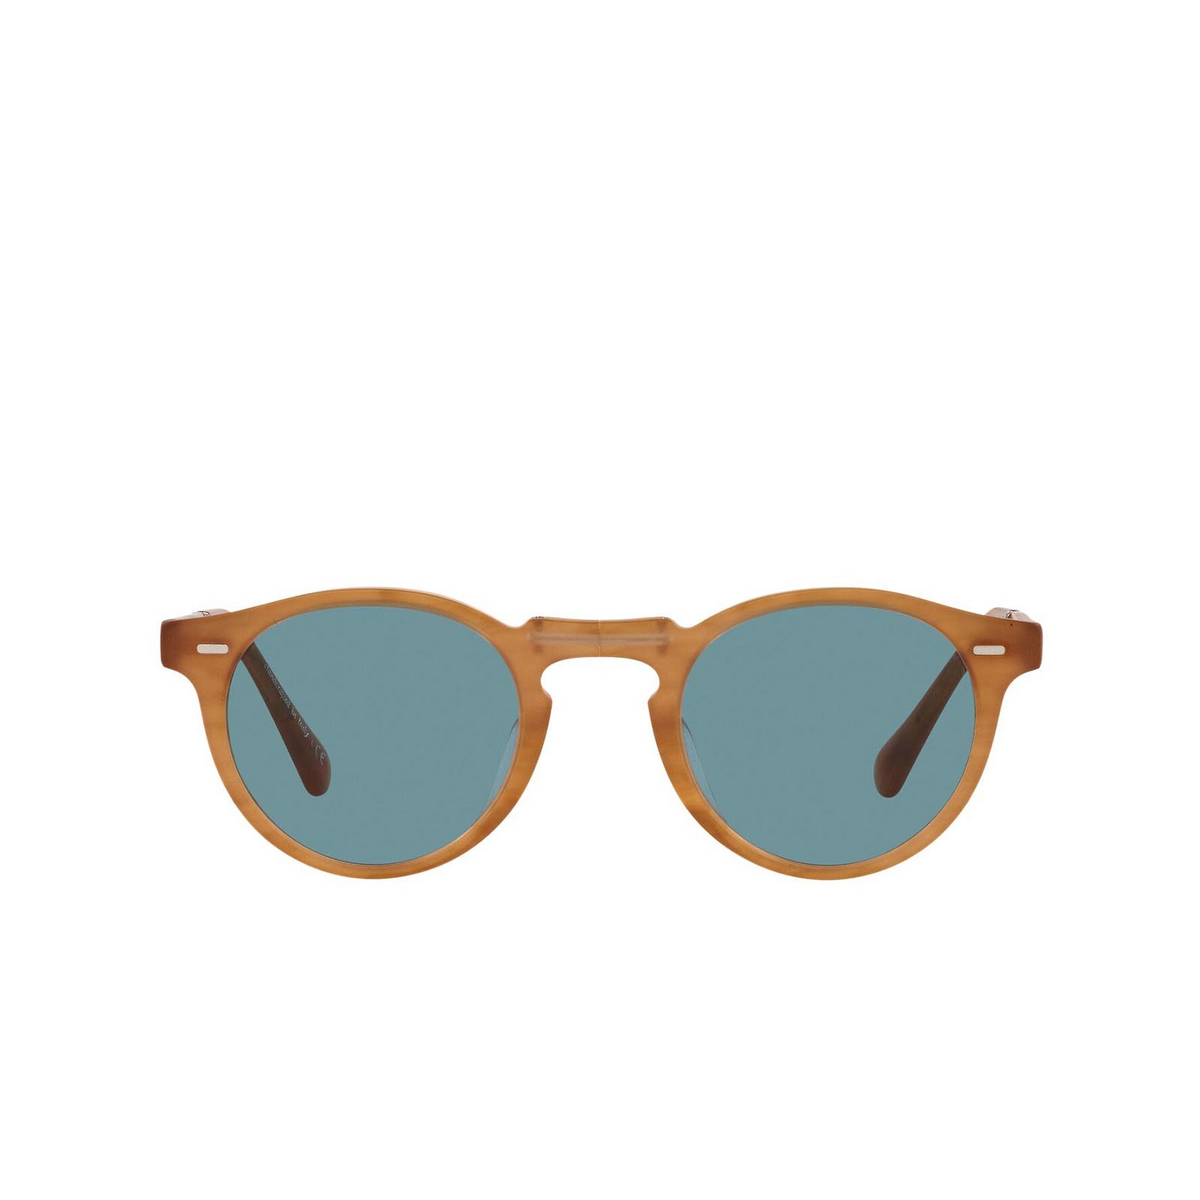 Oliver Peoples® Round Sunglasses: Gregory Peck 1962 OV5456SU color Semi Matte Amber Tortoise 169956 - front view.